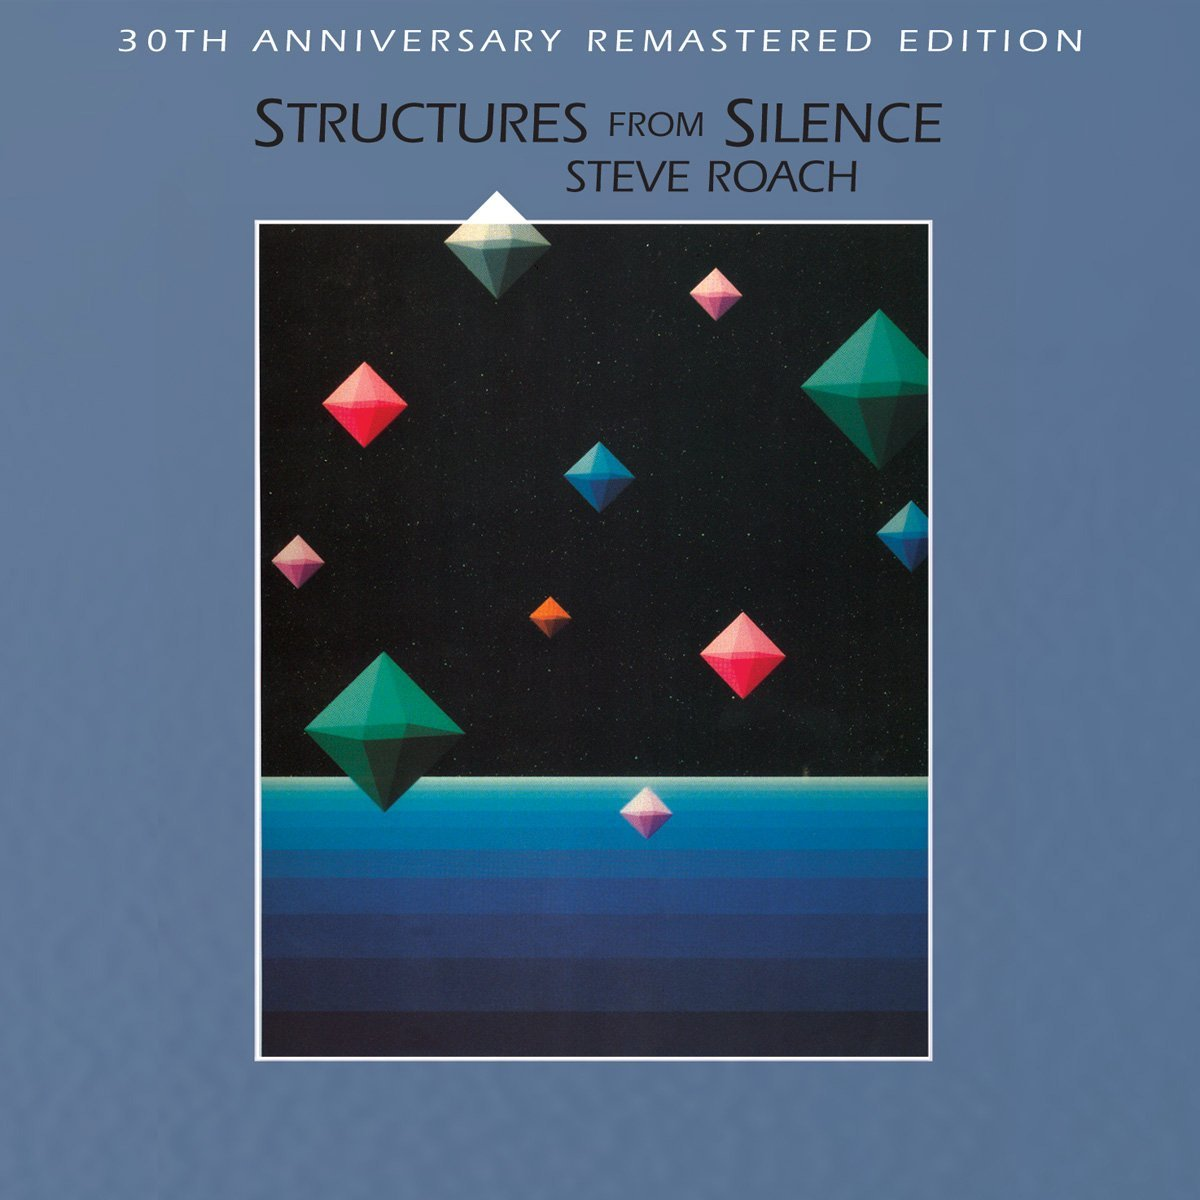 Steve Roach — Structures from Silence